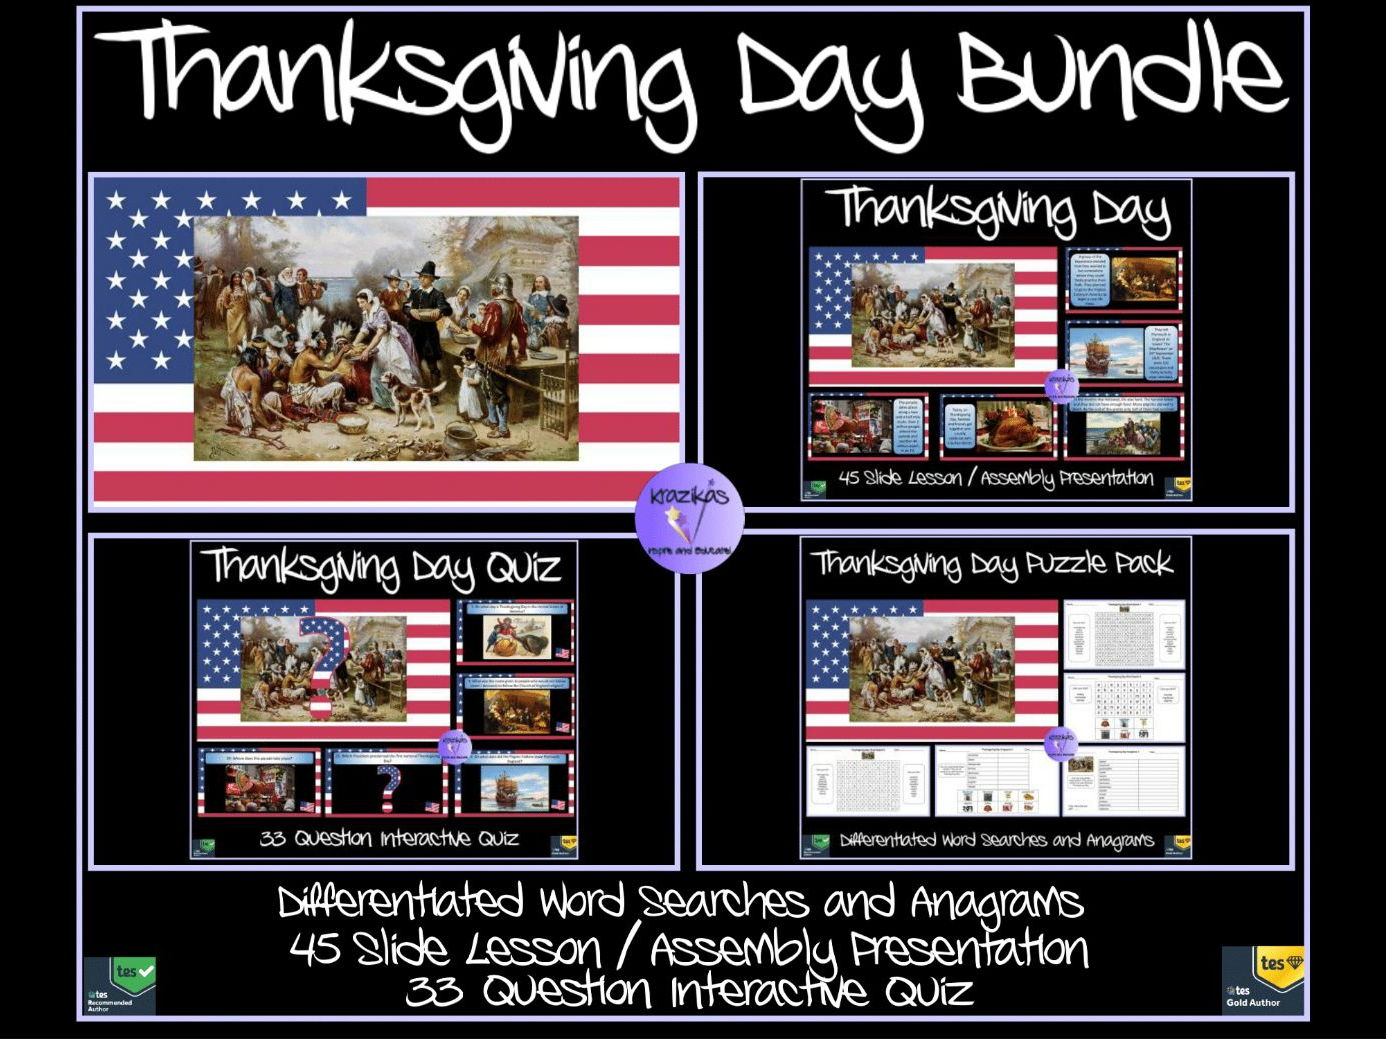 Thanksgiving Day Bundle - Presentation, Quiz, Puzzle Pack